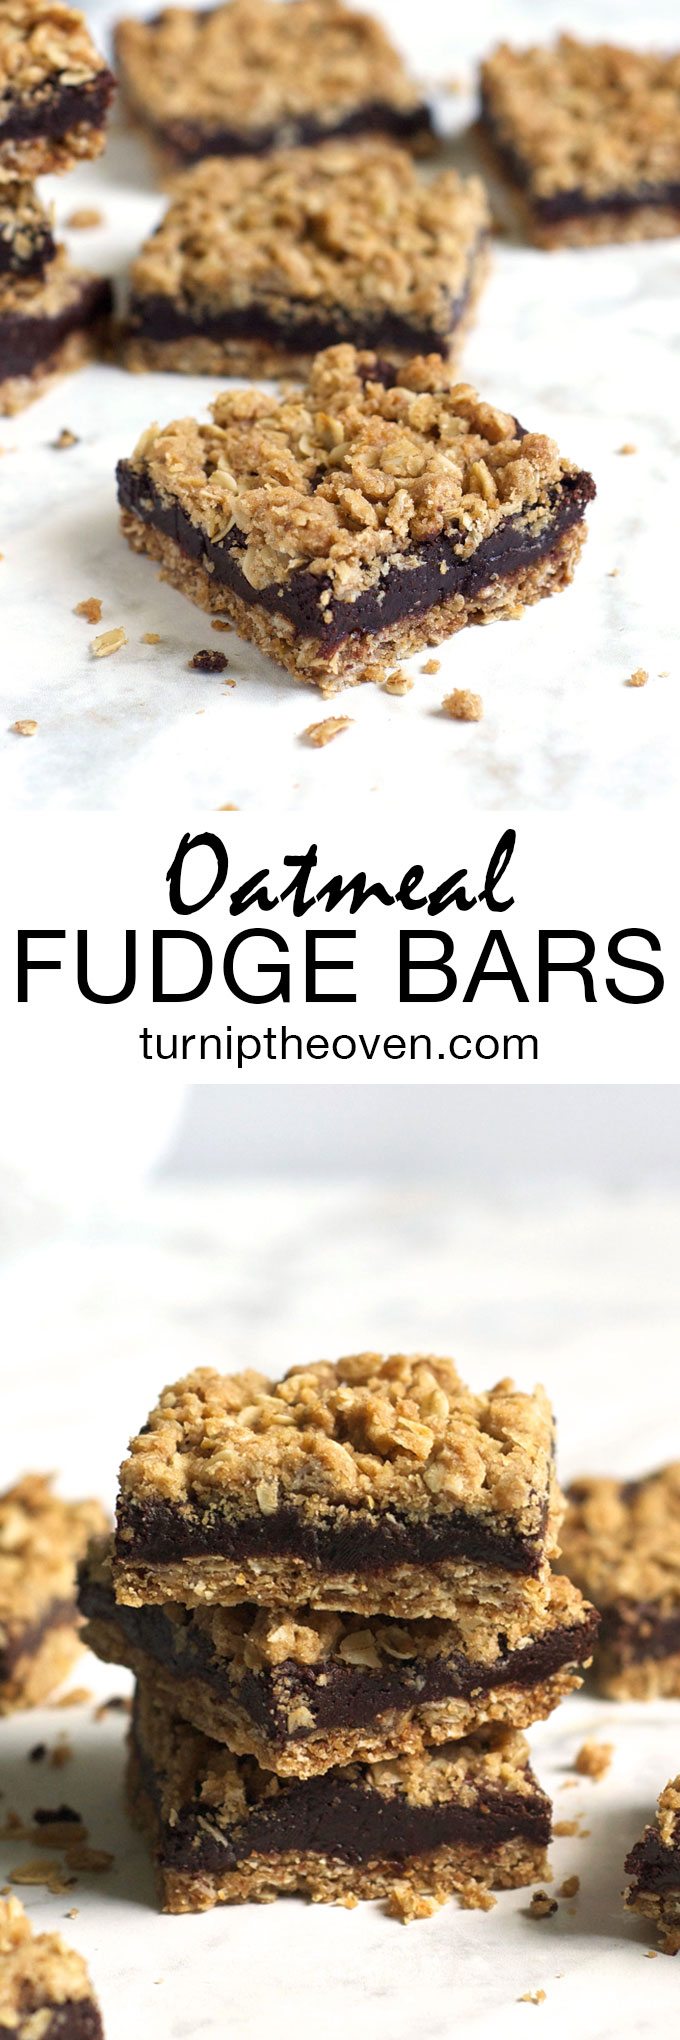 These whole wheat oatmeal fudge bars make the perfect dessert, any time of the year! A crispy oatmeal cookie forms the base and topping, and the middle is rich, gooey fudge. Pass the milk!